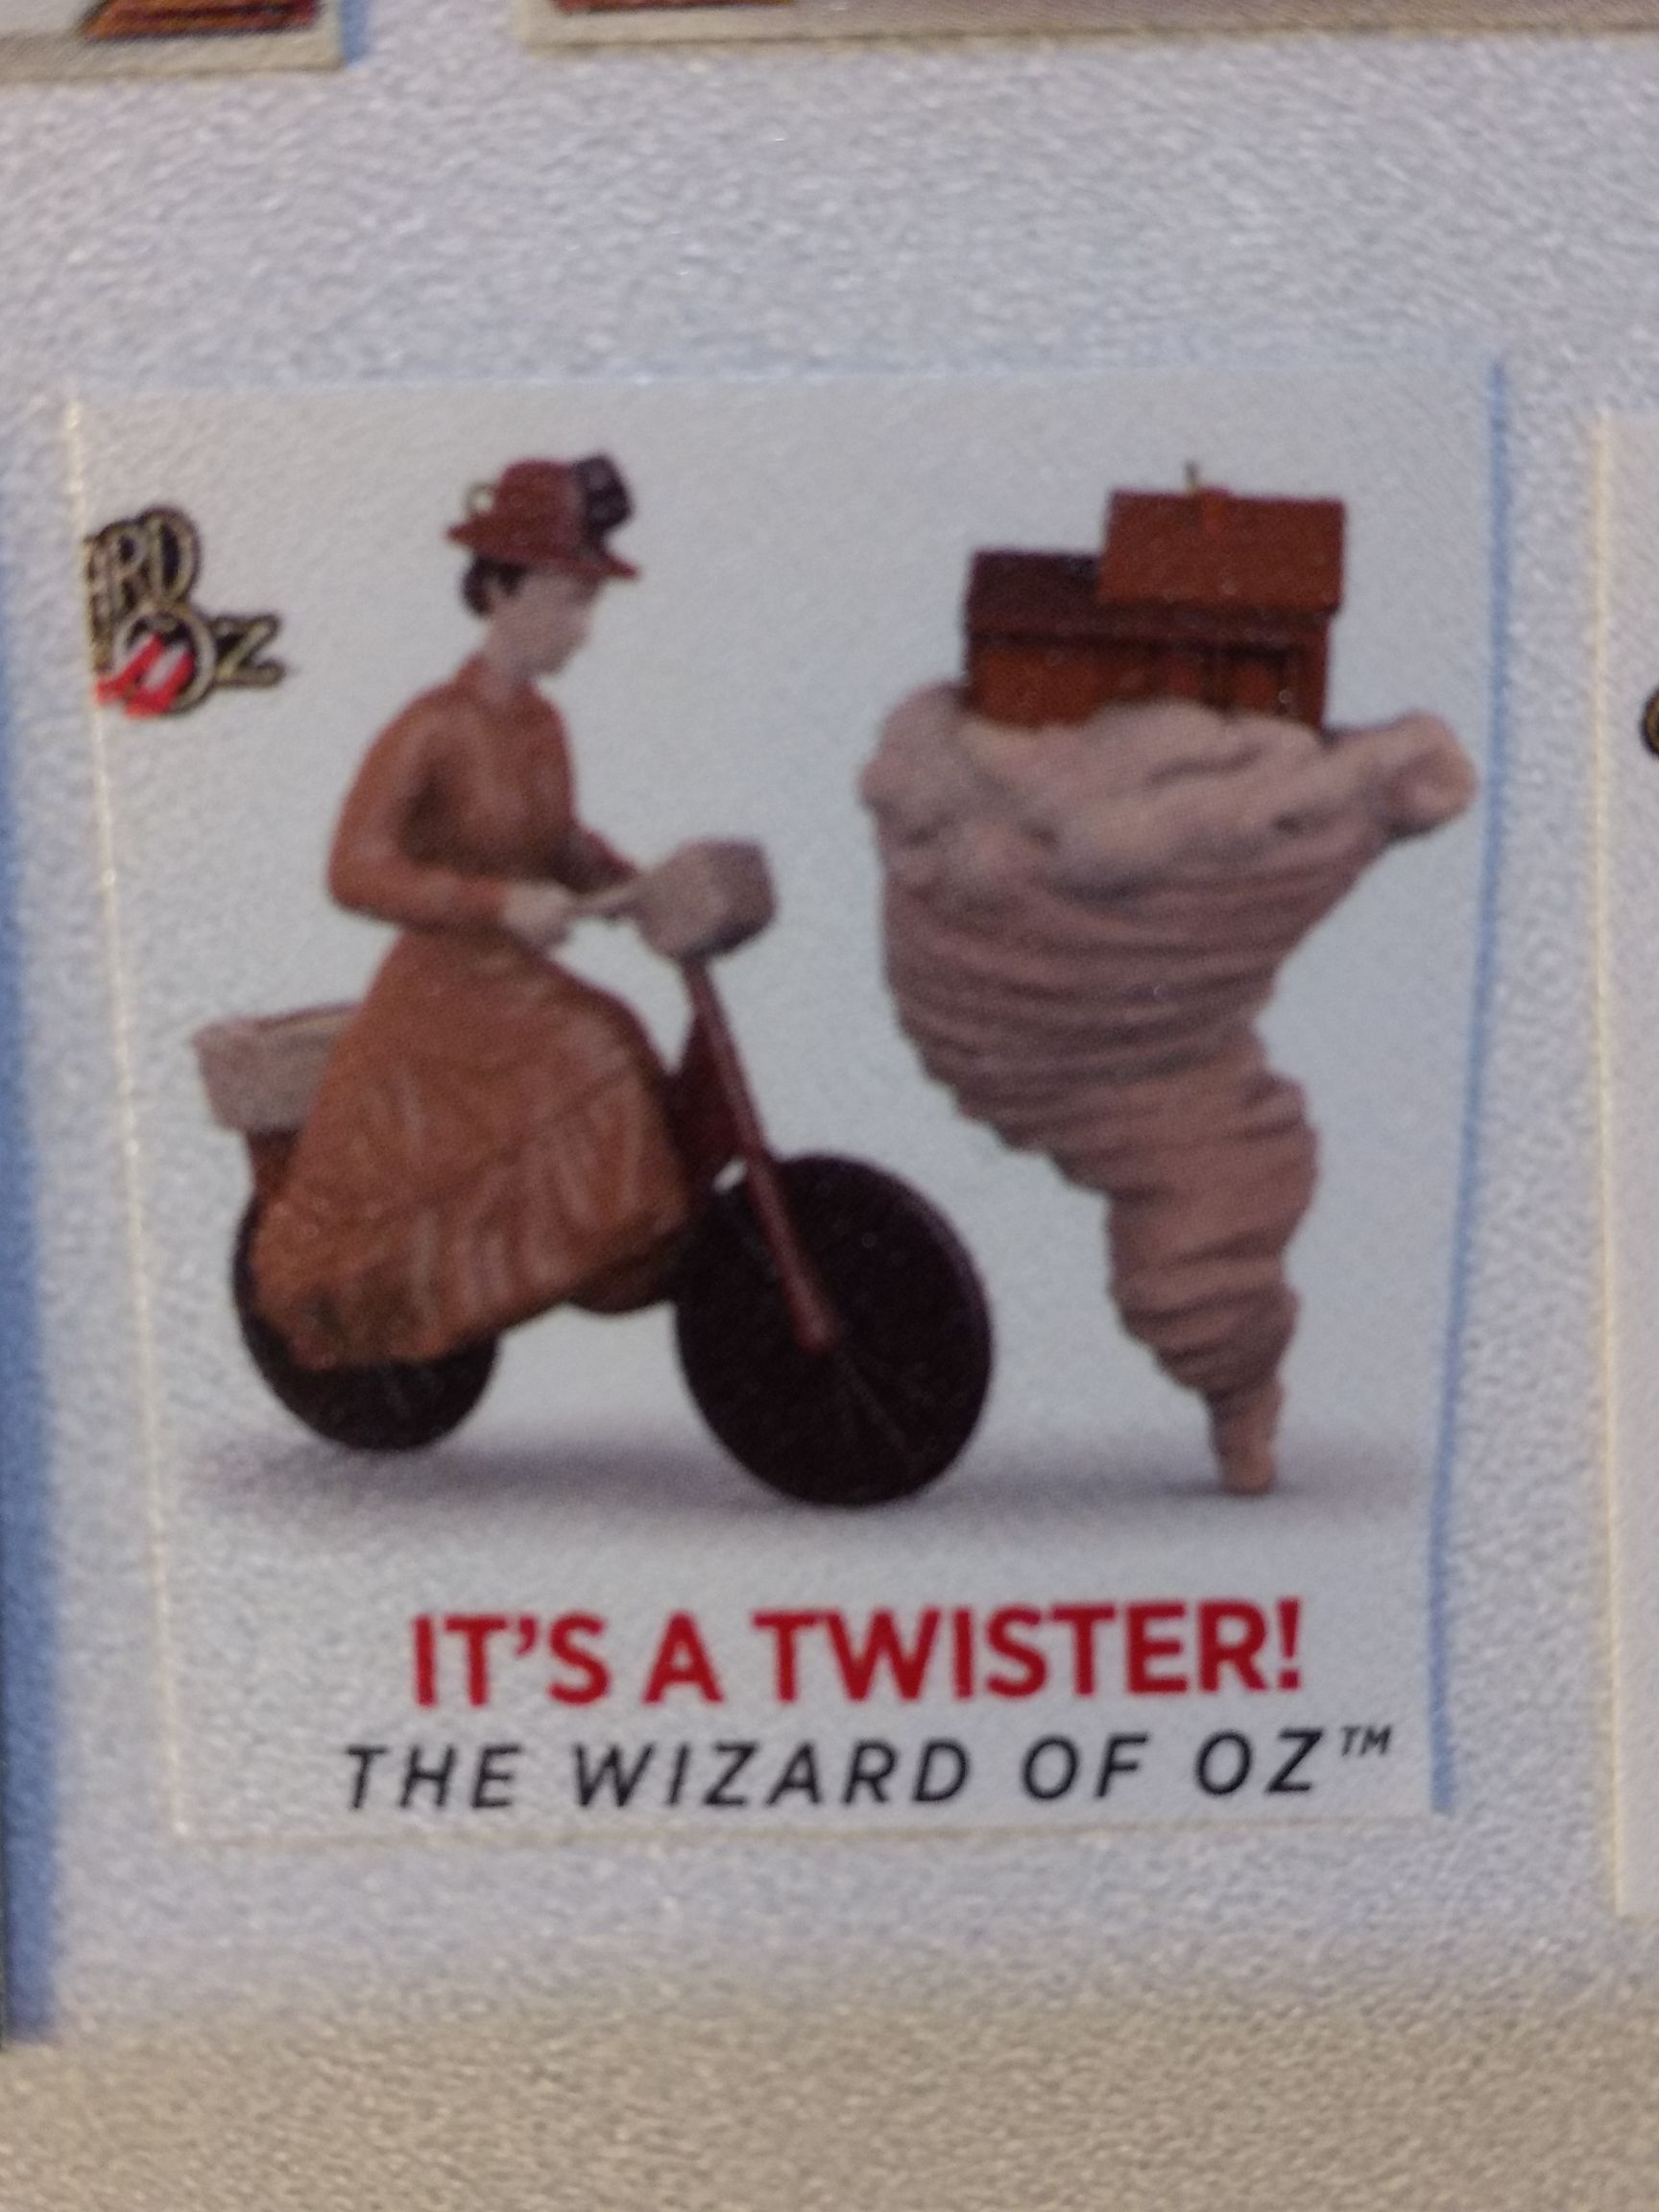 Z - Wizard Of Oz - It's A Twister Ornament - Hallmark front image (front cover)